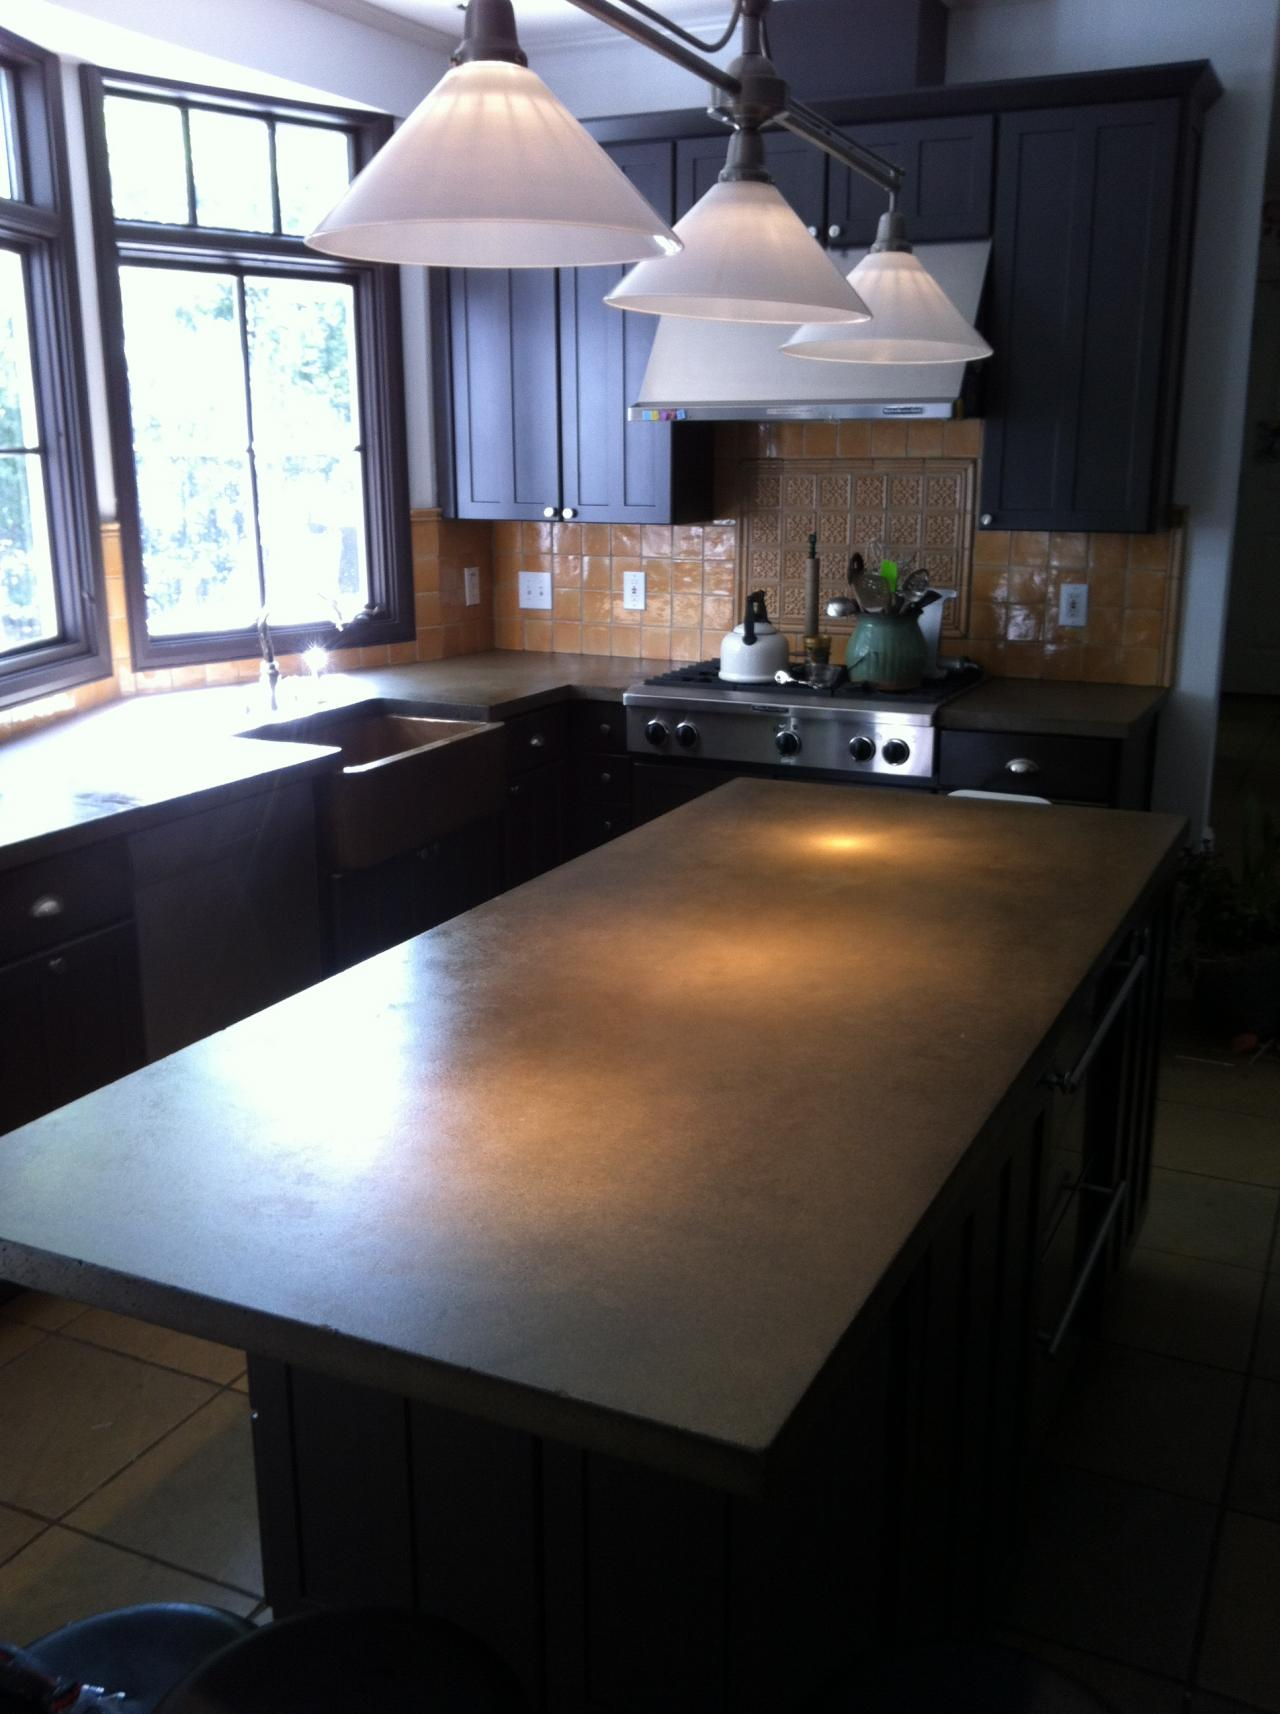 Finished Concrete Countertops Burco Surface And Decor Llc Concrete Countertops Atlanta